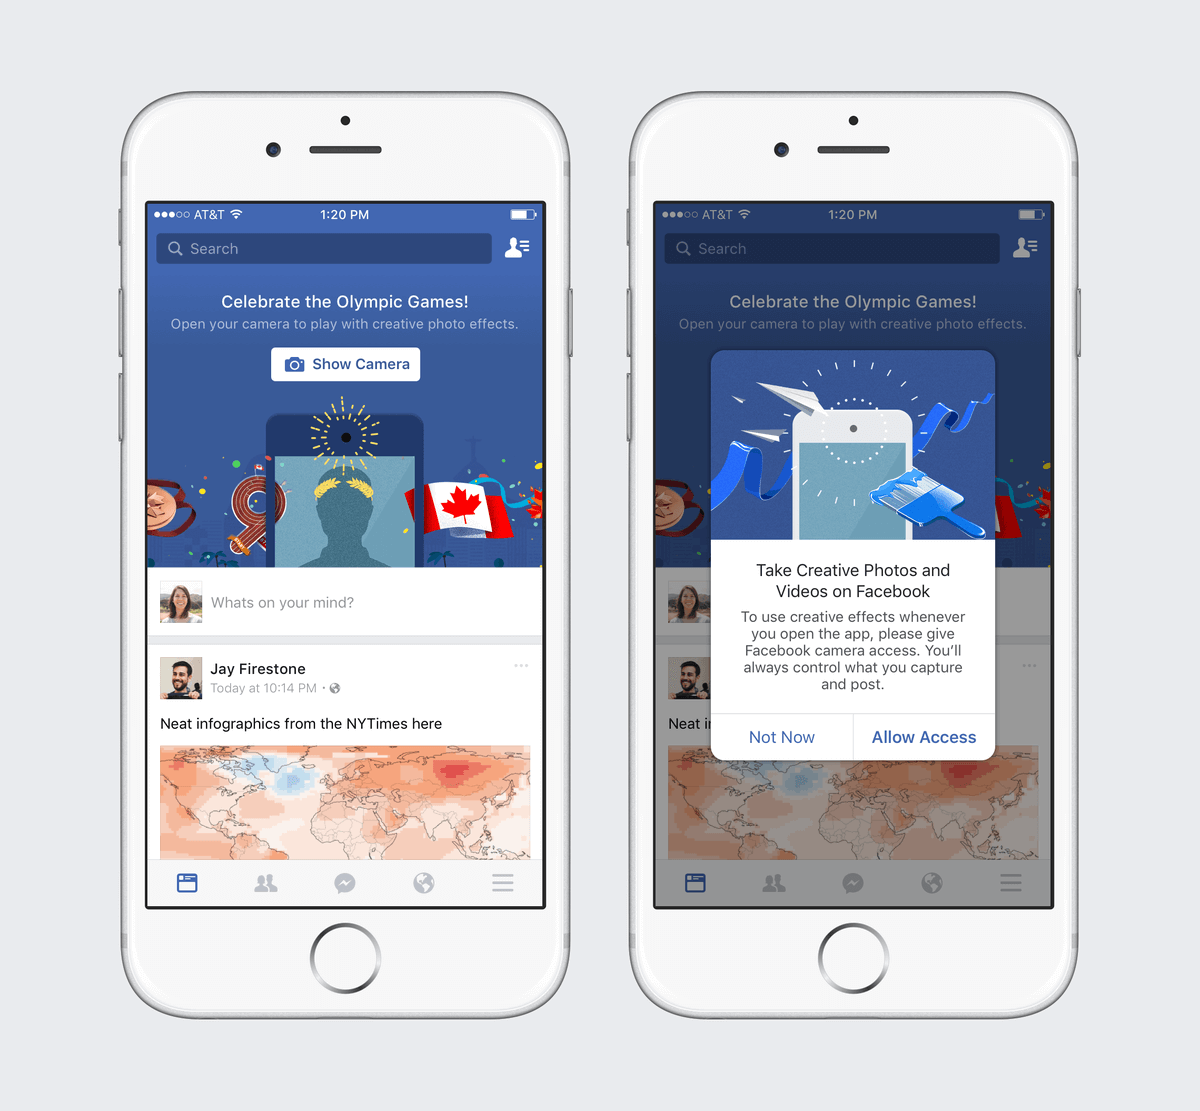 Facebook Promotes Olympics in Brazil and Canada with Its CameraFeed and MSQRD Selfie Filter Integration